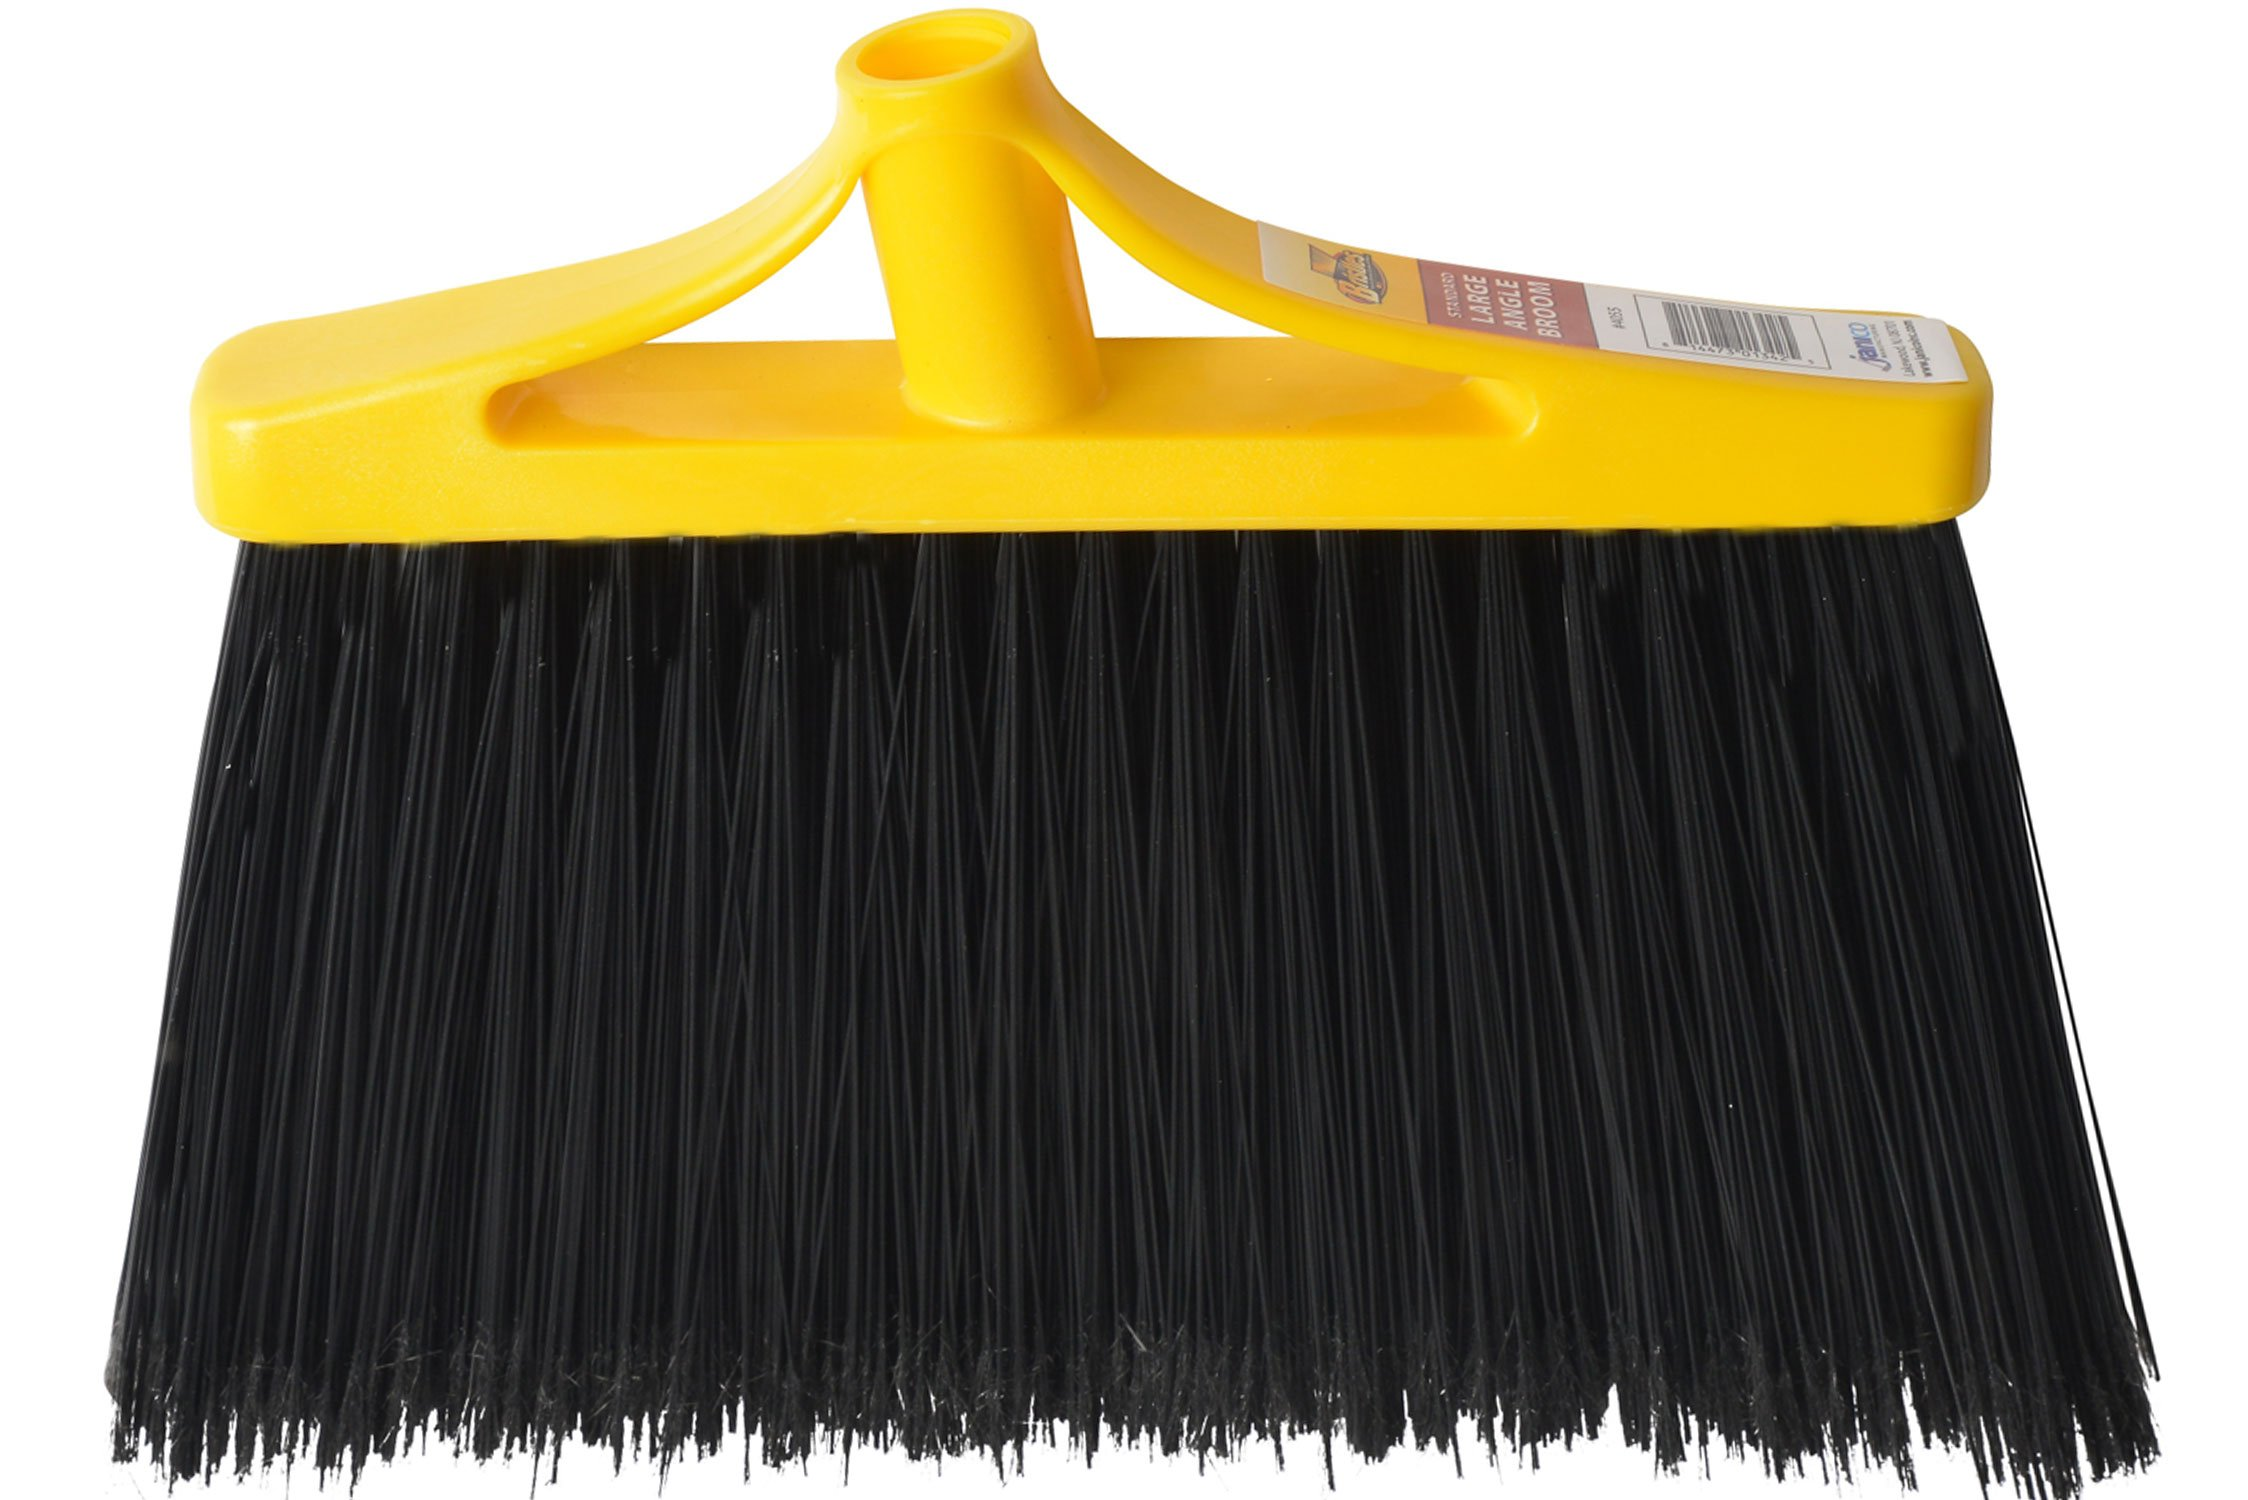 Bristles 4055H Angle Broom Head Only Replacement Flagged Poly Bristles, Large, Black, Pack of 1